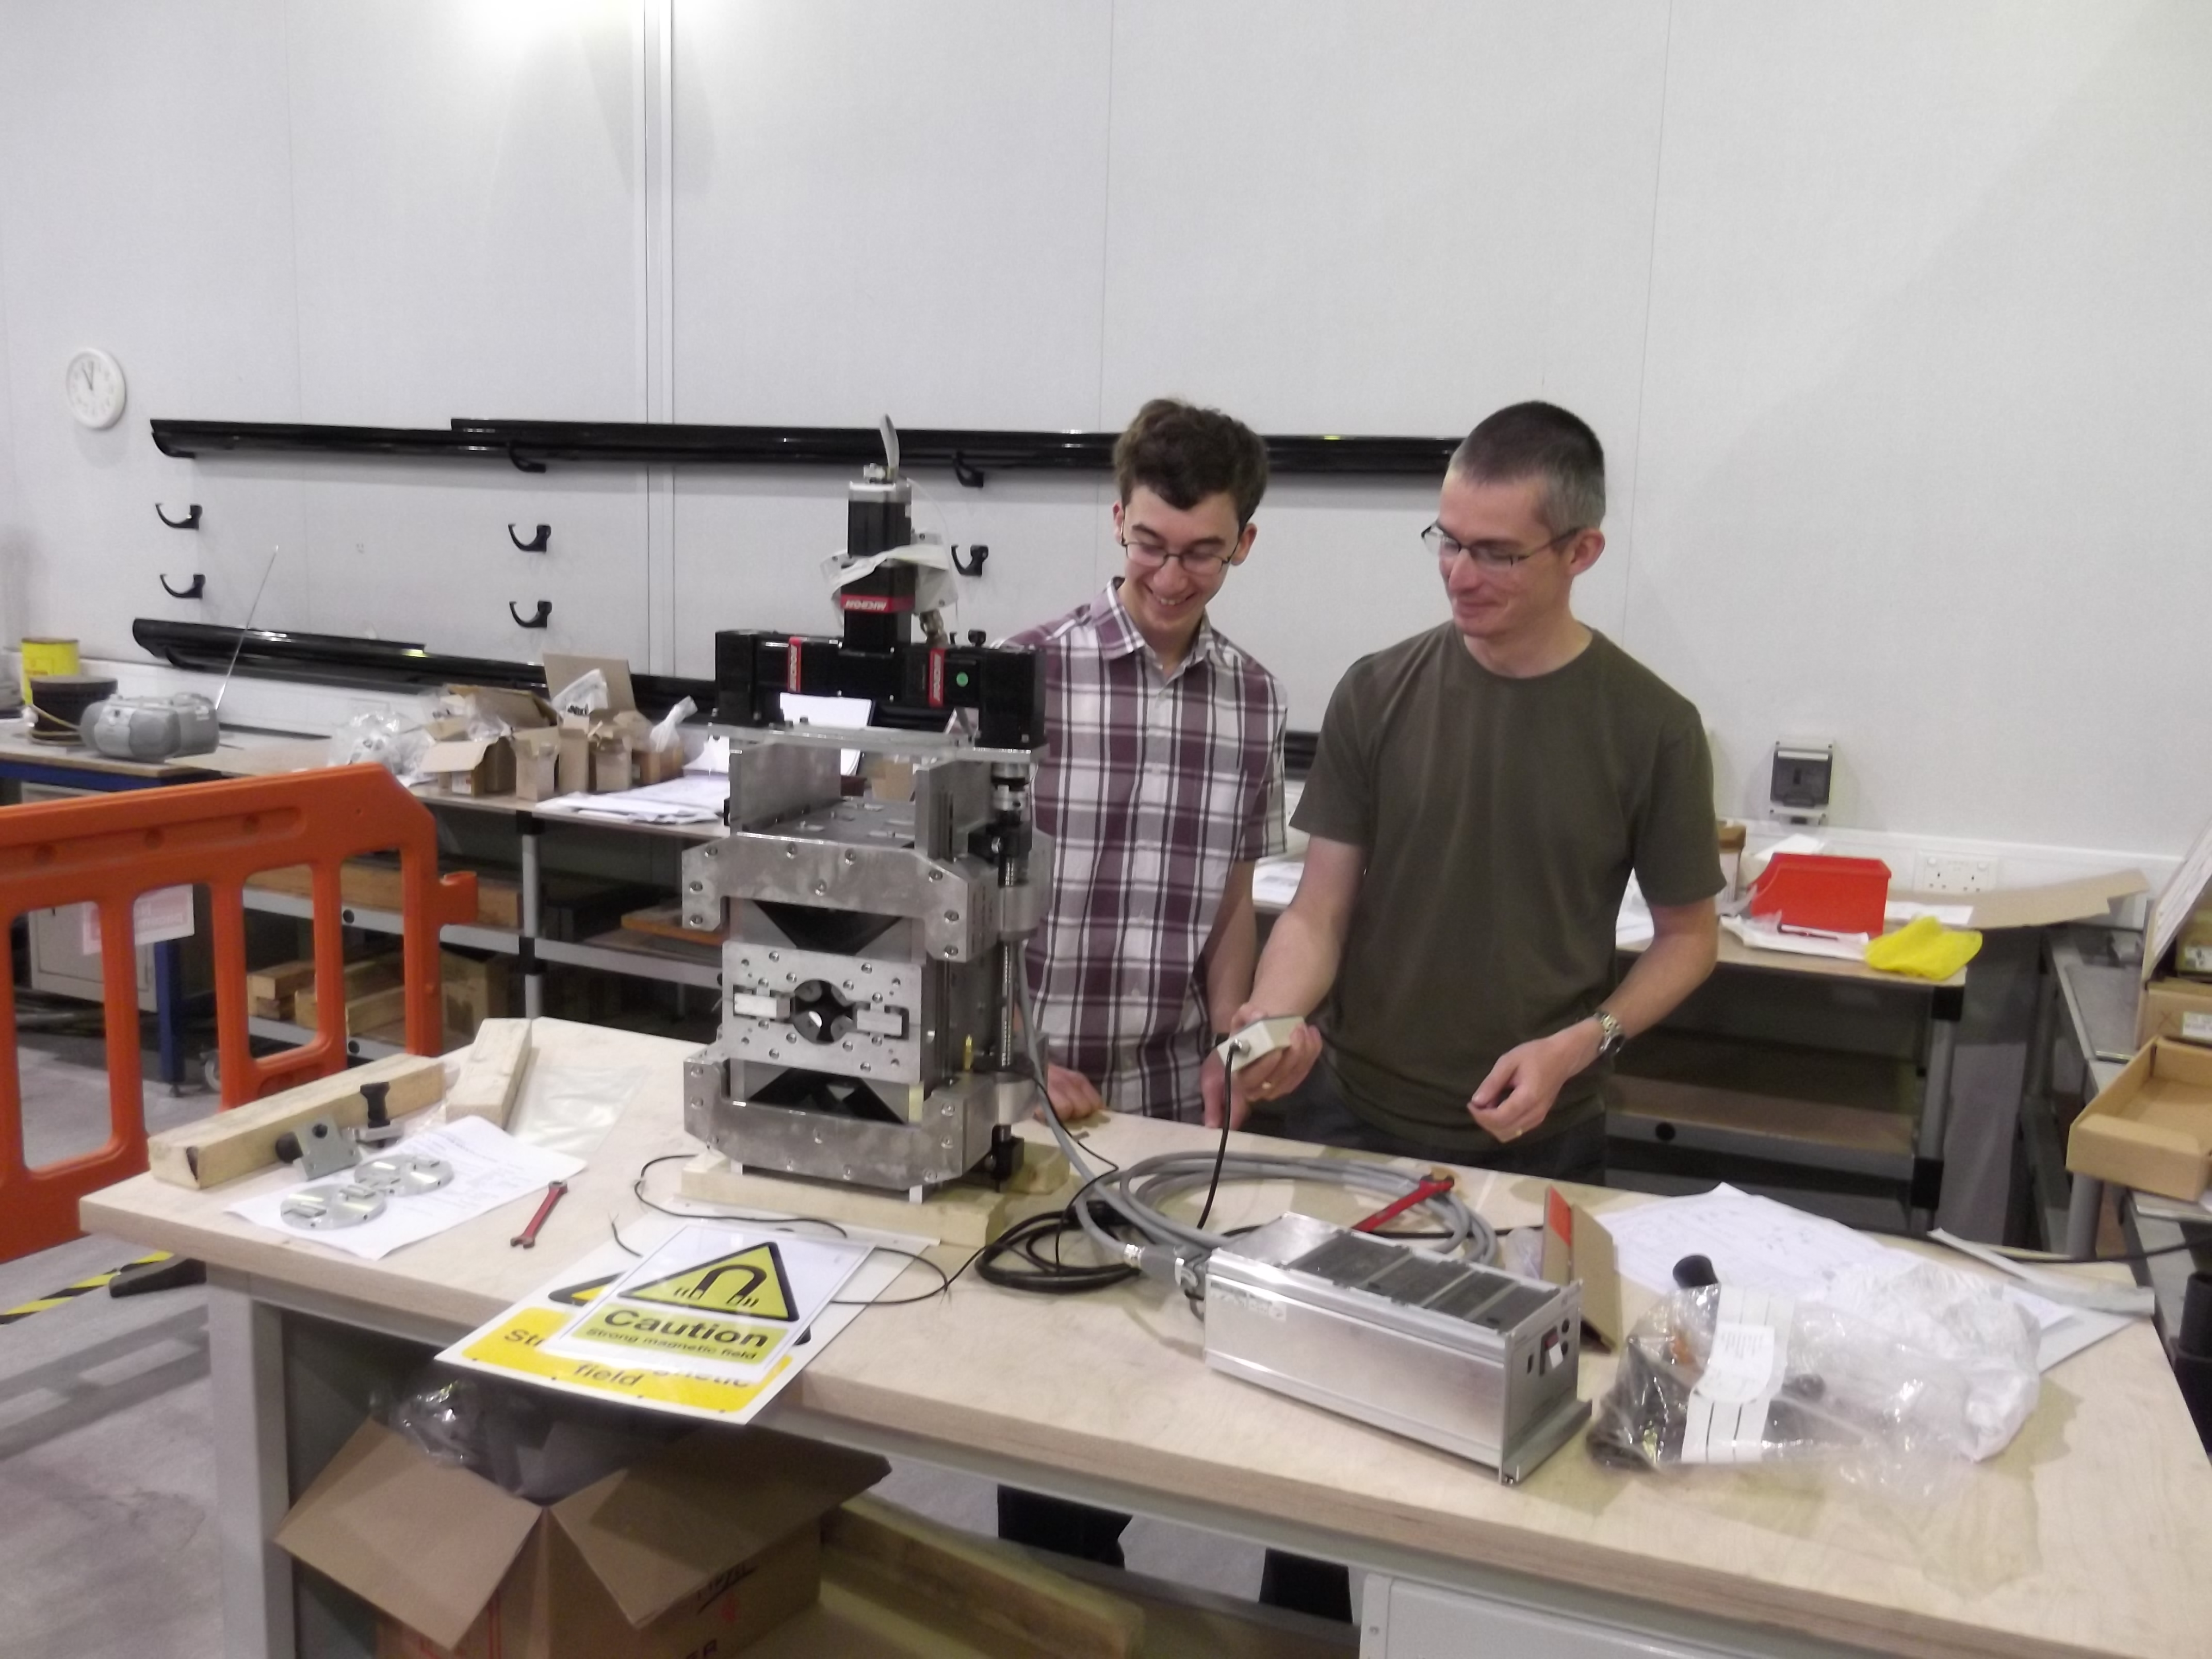 ASTEC ASTeC hosts work experience students